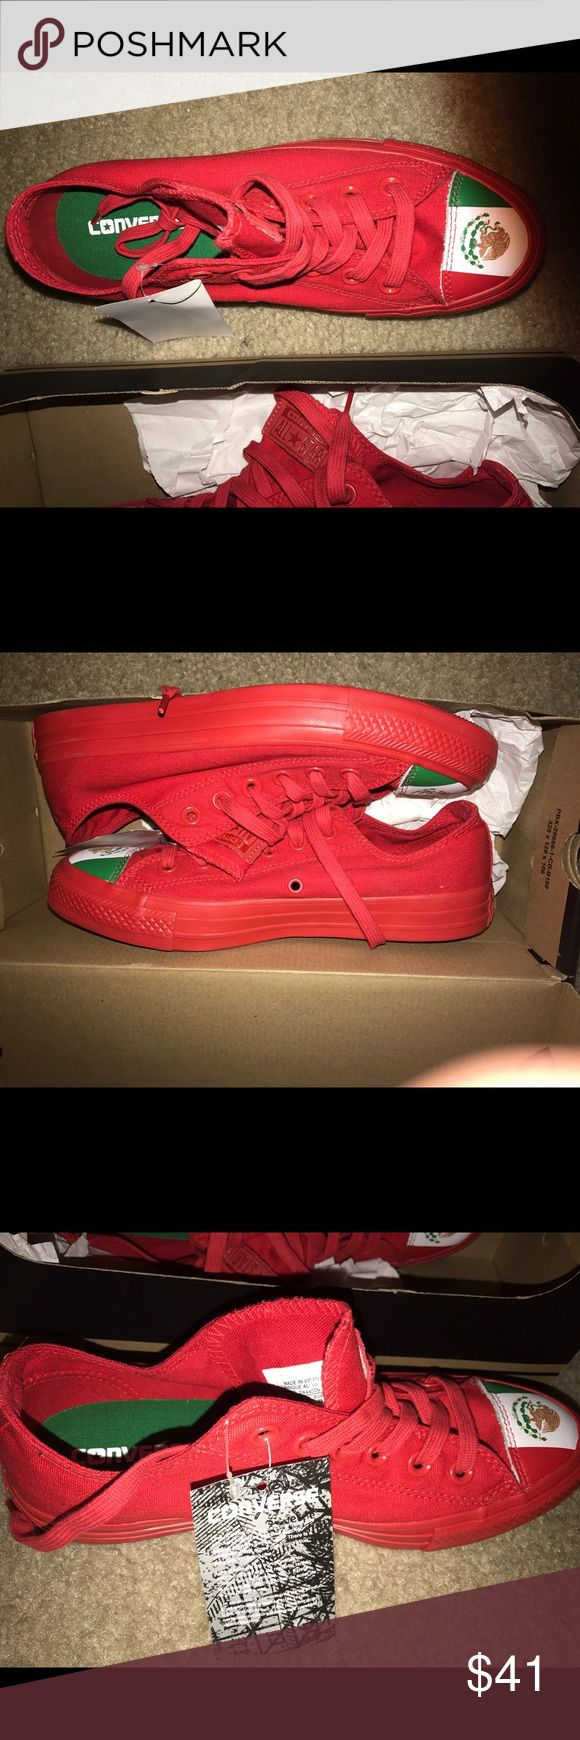 Unisex Red Converse, Mexican Flag edition, low top Brand new red Converse shoes with Mexican flag on the toe. Box included Converse Shoes Sneakers